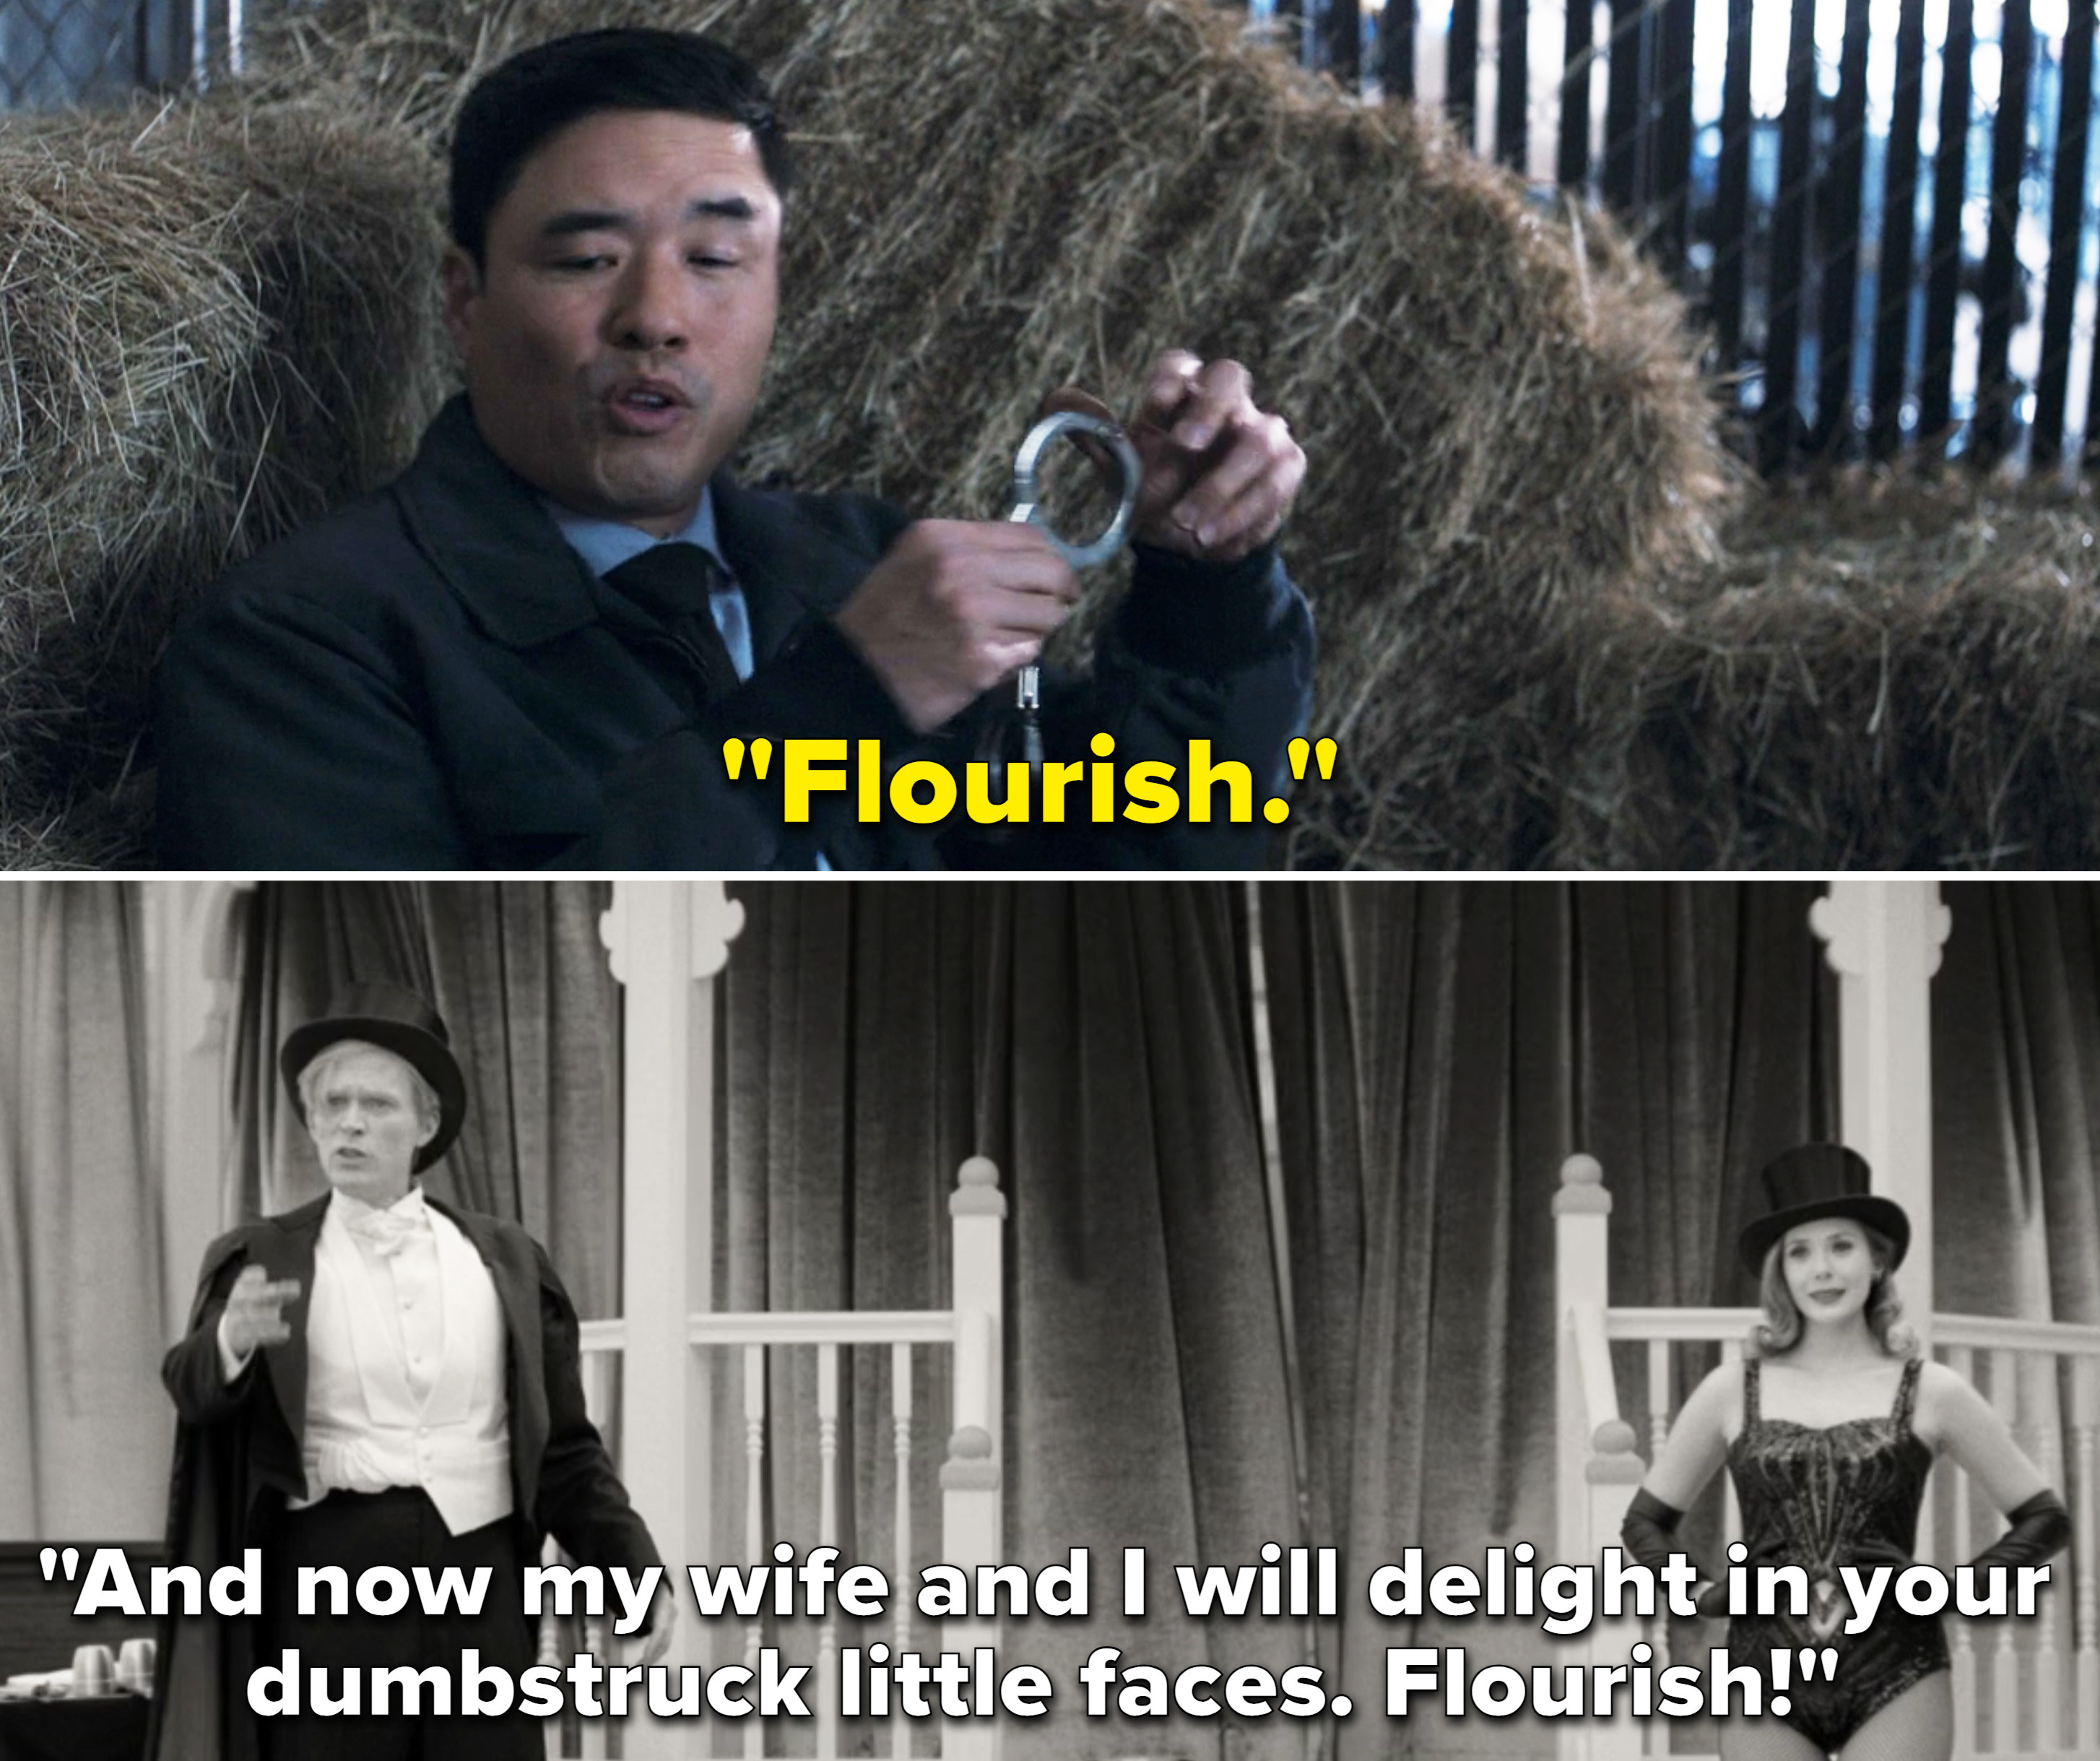 "Jimmy saying, ""Flourish"" vs. Vision in Episode 2 saying, ""And now my wife and I will delight in your dumbstruck little faces. Flourish!"""